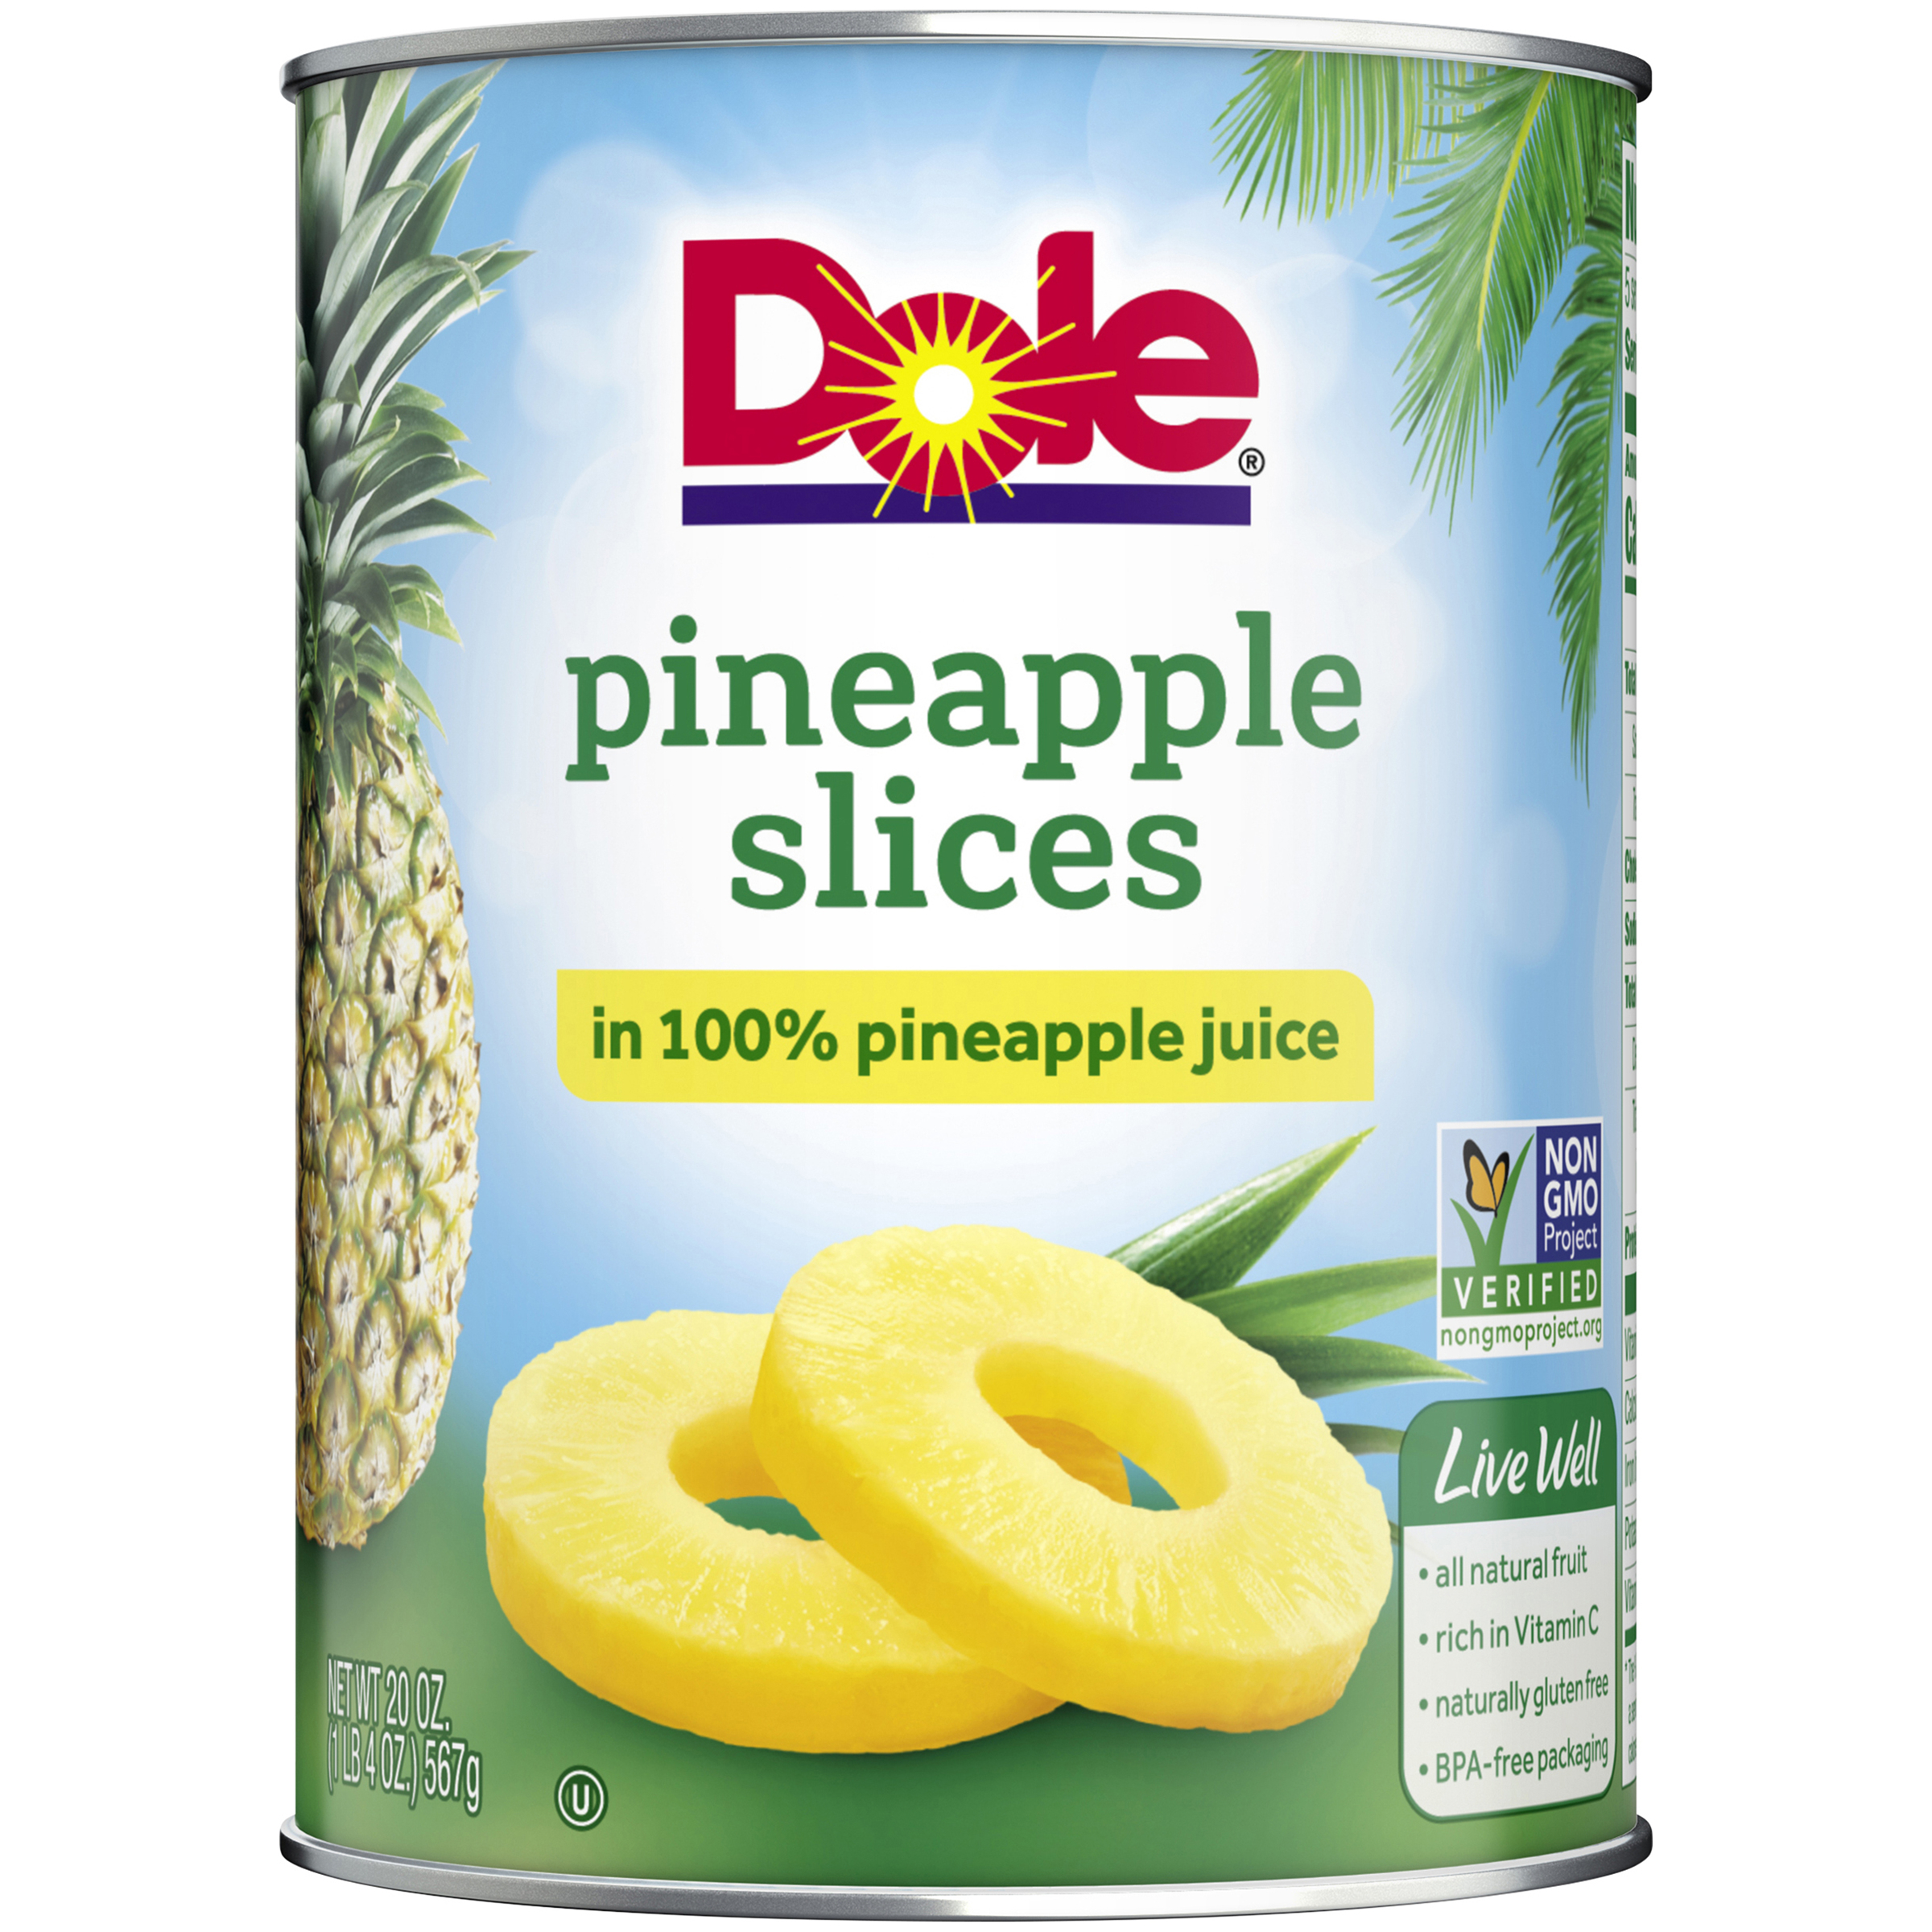 Dole Pineapple Slices in 100% Pineapple Juice 20 oz. Can